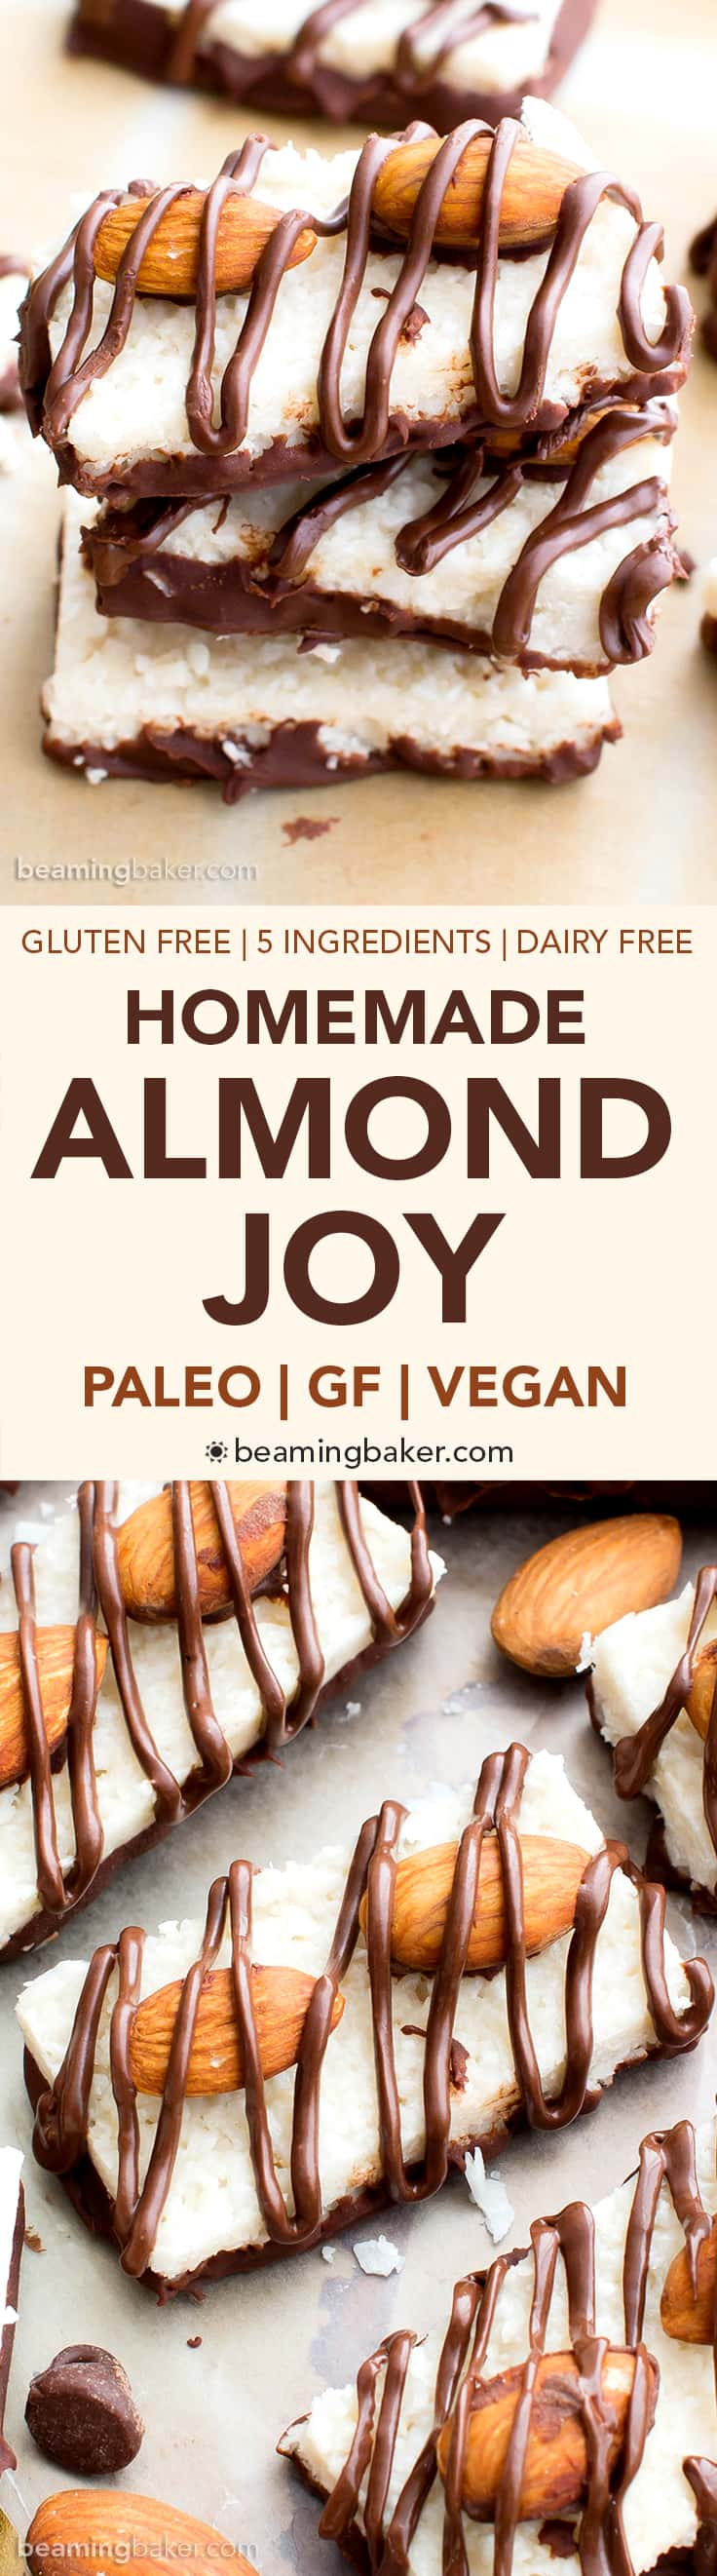 Paleo Almond Joy (V, GF, DF): a 5-ingredient recipe for deliciously satisfying homemade Almond Joy candy bars bursting with coconut and chocolate. #Paleo #Vegan #GlutenFree #DairyFree | BeamingBaker.com | @BeamingBaker